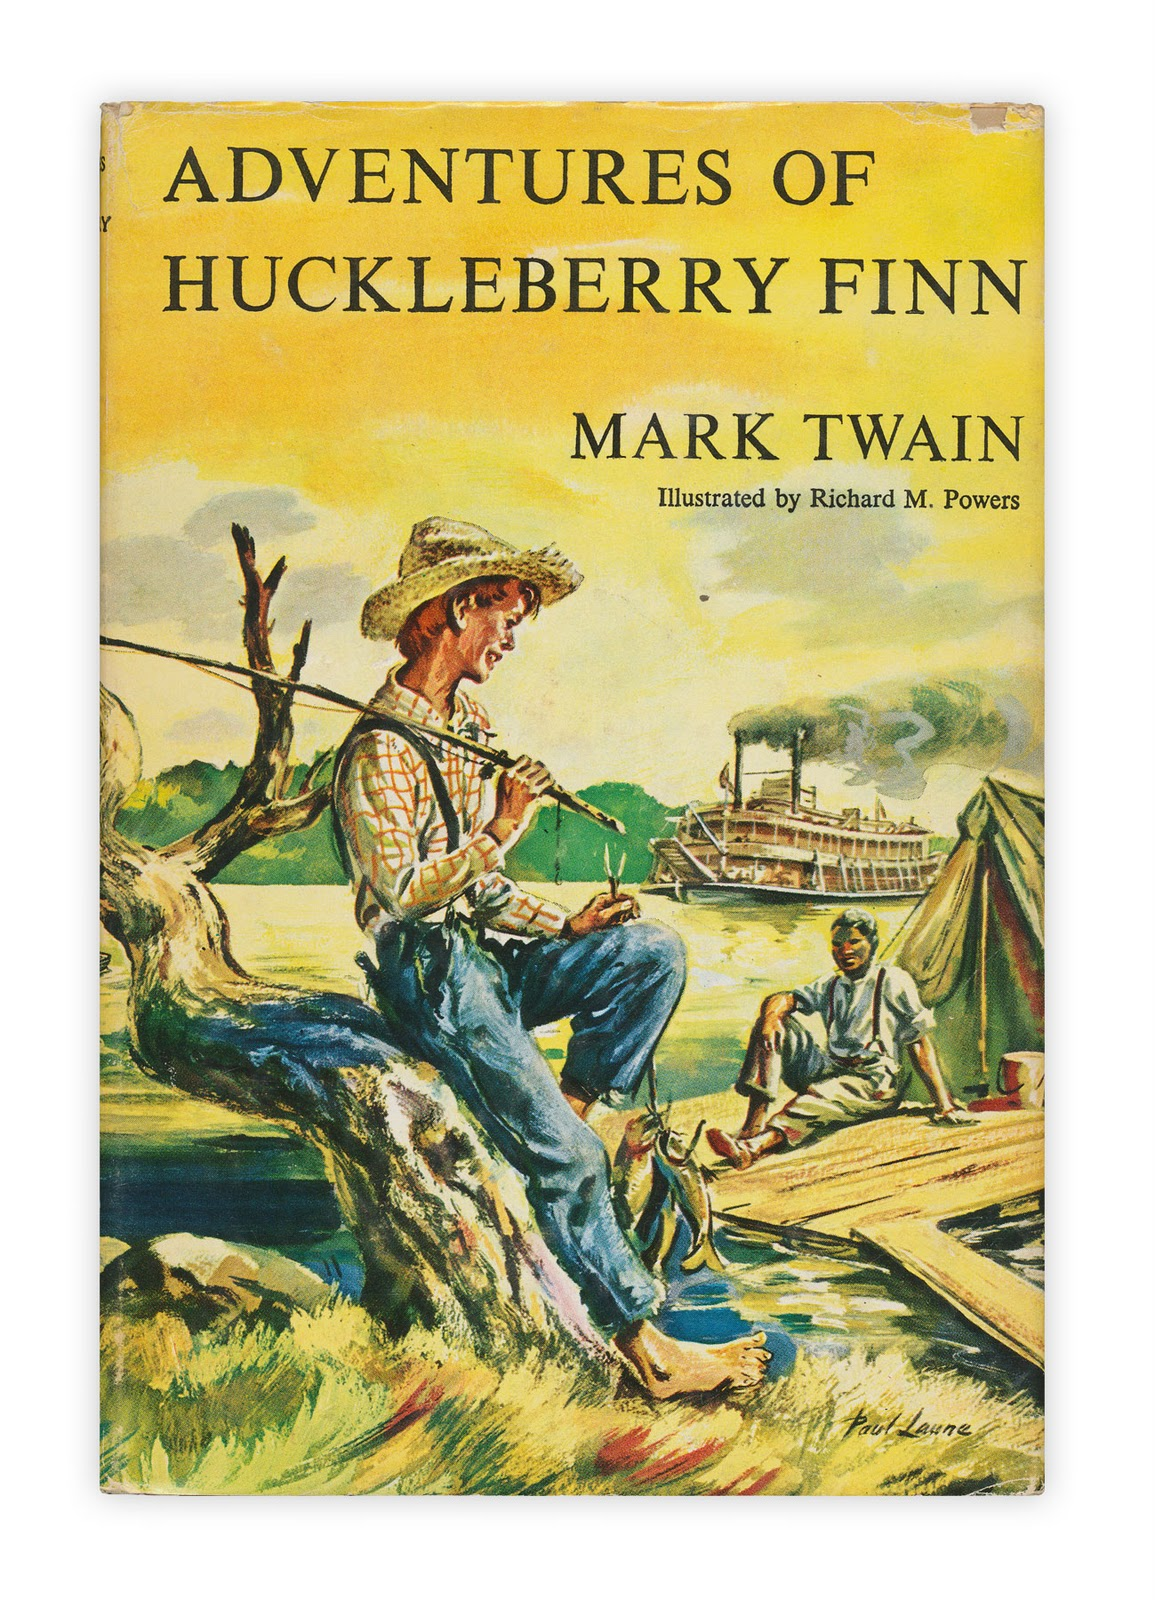 why is huck finn important of american literature Nothing is half so good as literature hooked on sunday, on the sly  twain did  not live to see adventures of huckleberry finn assume the unshakable  pencil  in the margin the most important passages of the plot itself , and in red pencil  here.